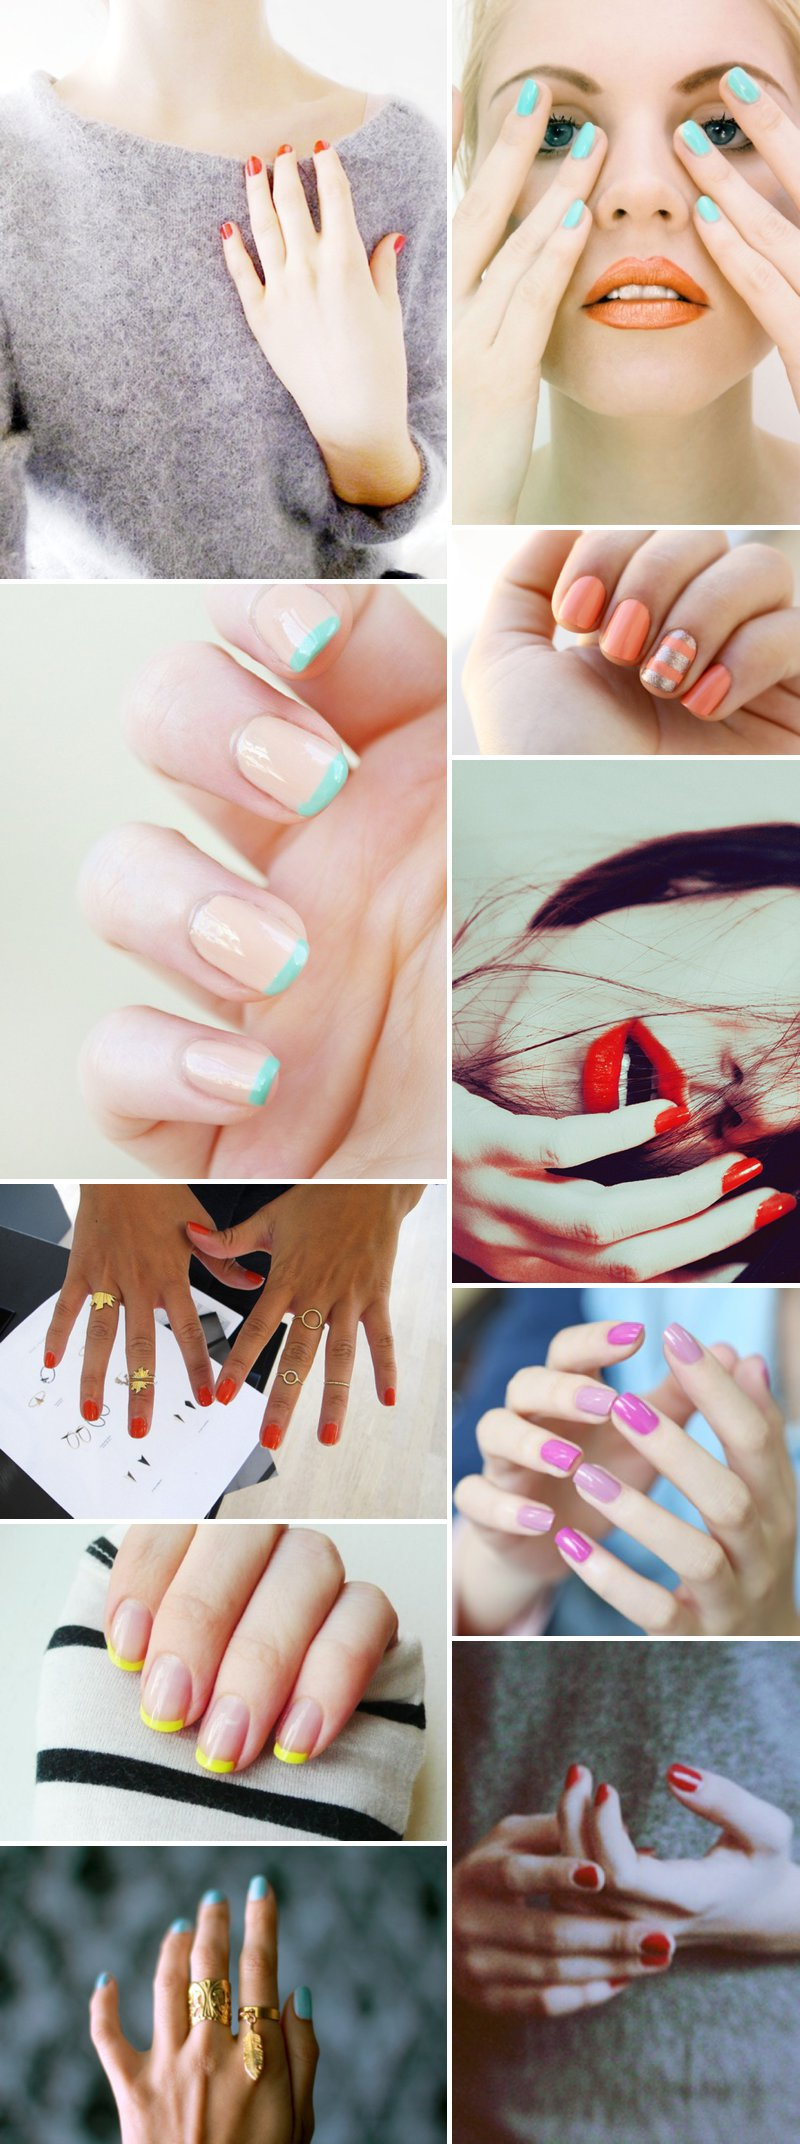 Colour Pop Bright Nails Red Turquoise Wedding Manicure